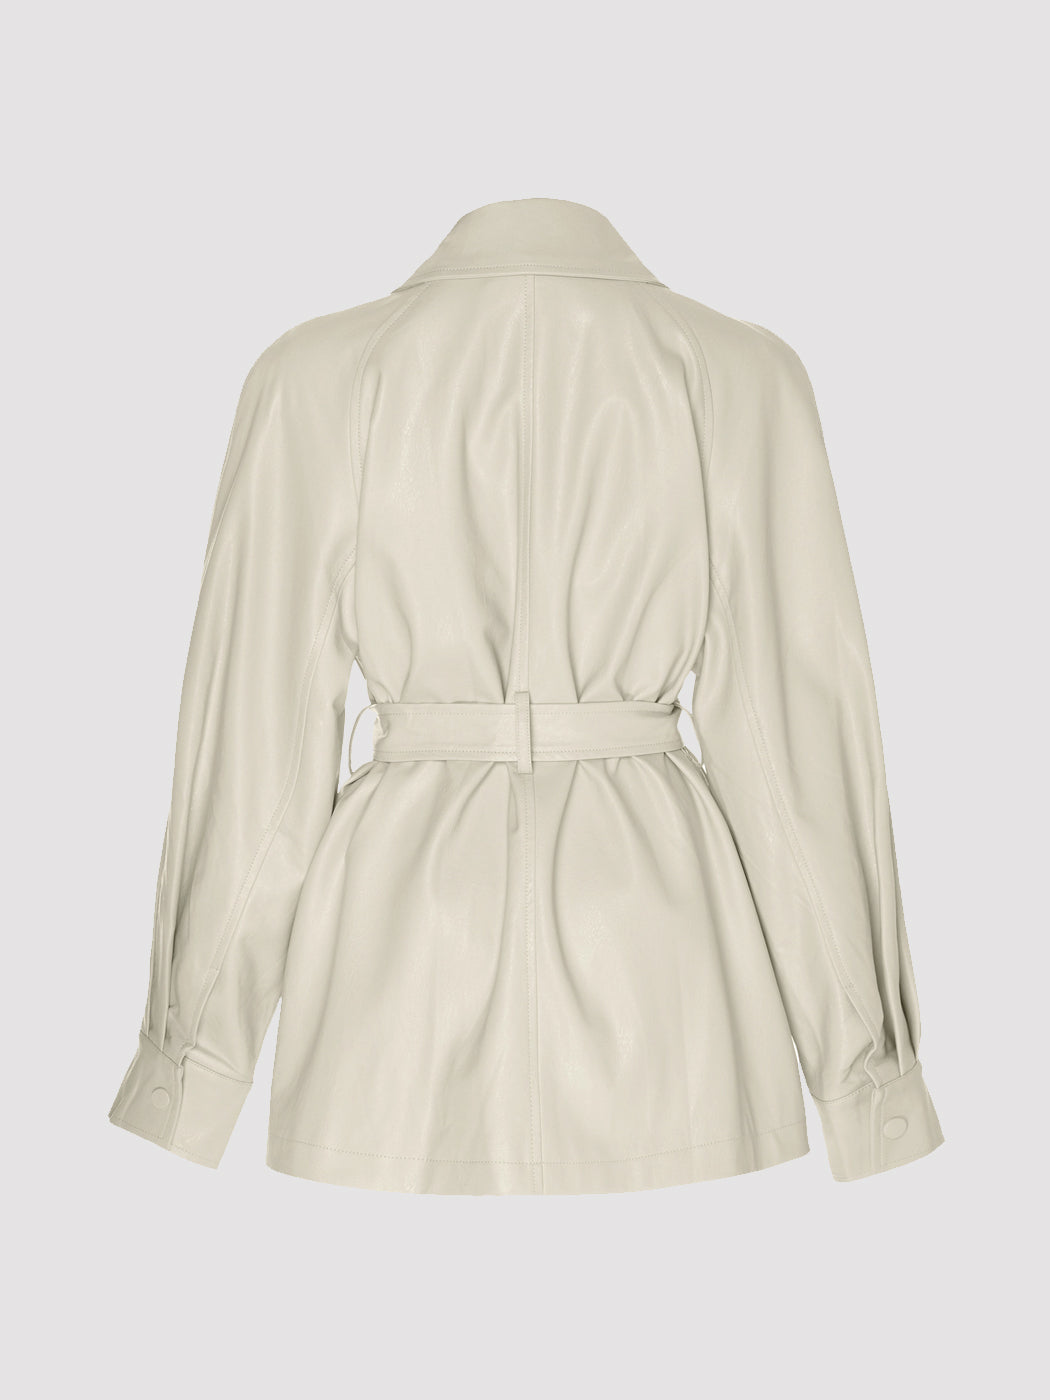 Apparis - Tina Belted Vegan Leather Jacket / Tusk Ivory